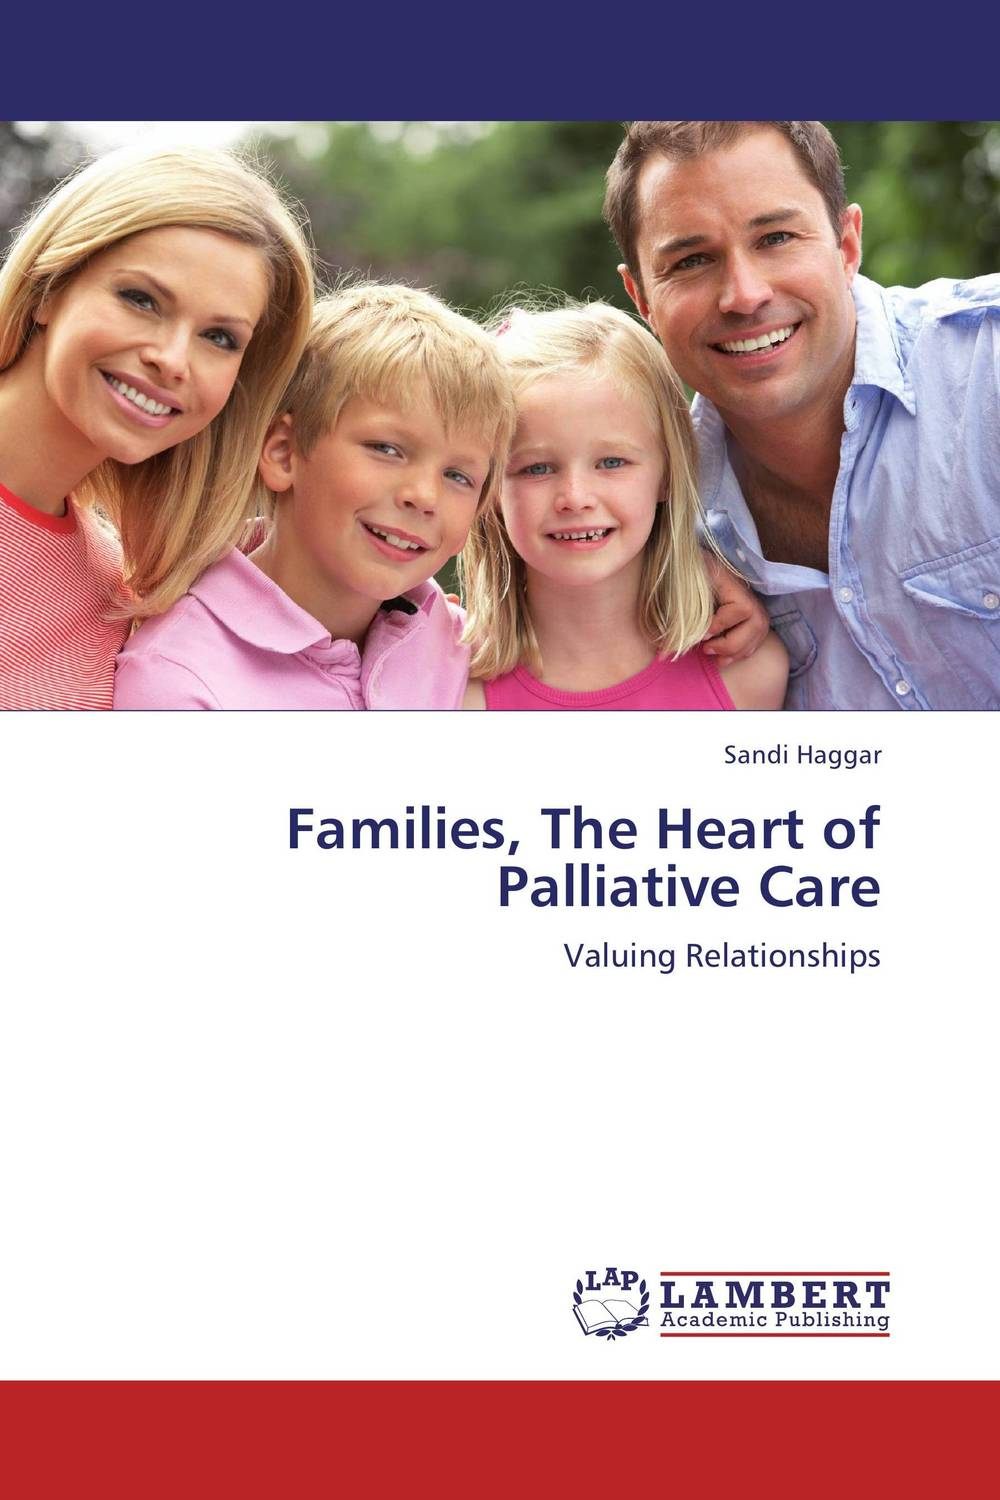 Families, The Heart of Palliative Care work family practices and their impact